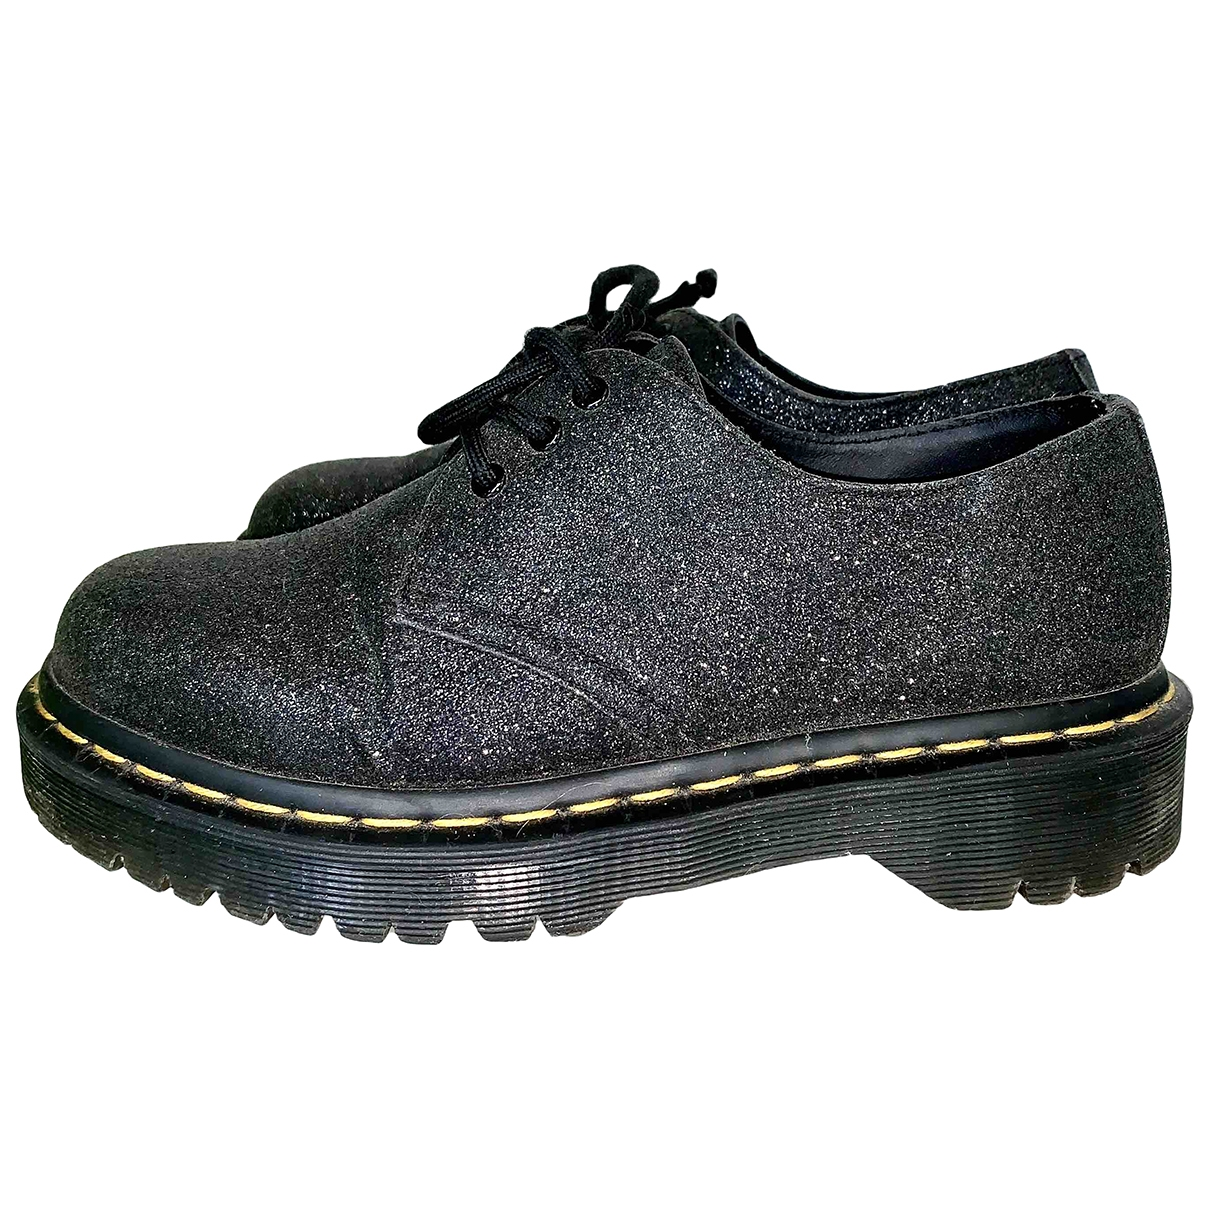 Dr. Martens \N Black Glitter Flats for Women 37 EU